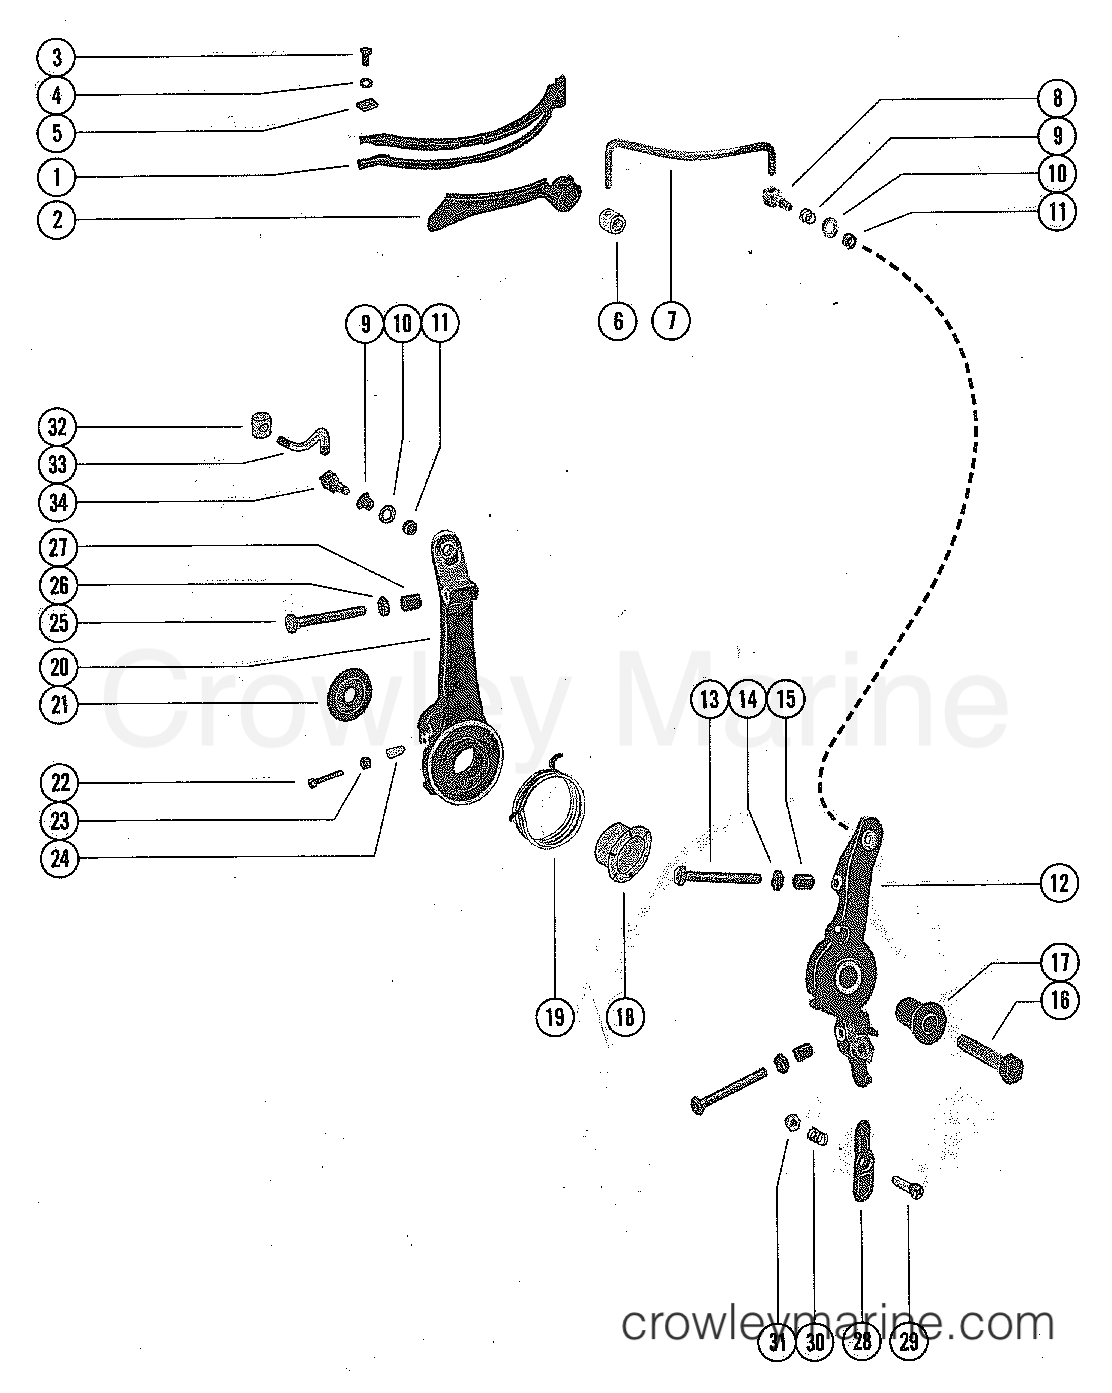 hight resolution of 1976 mercury outboard 65 1650506 throttle control linkage and spark advance section